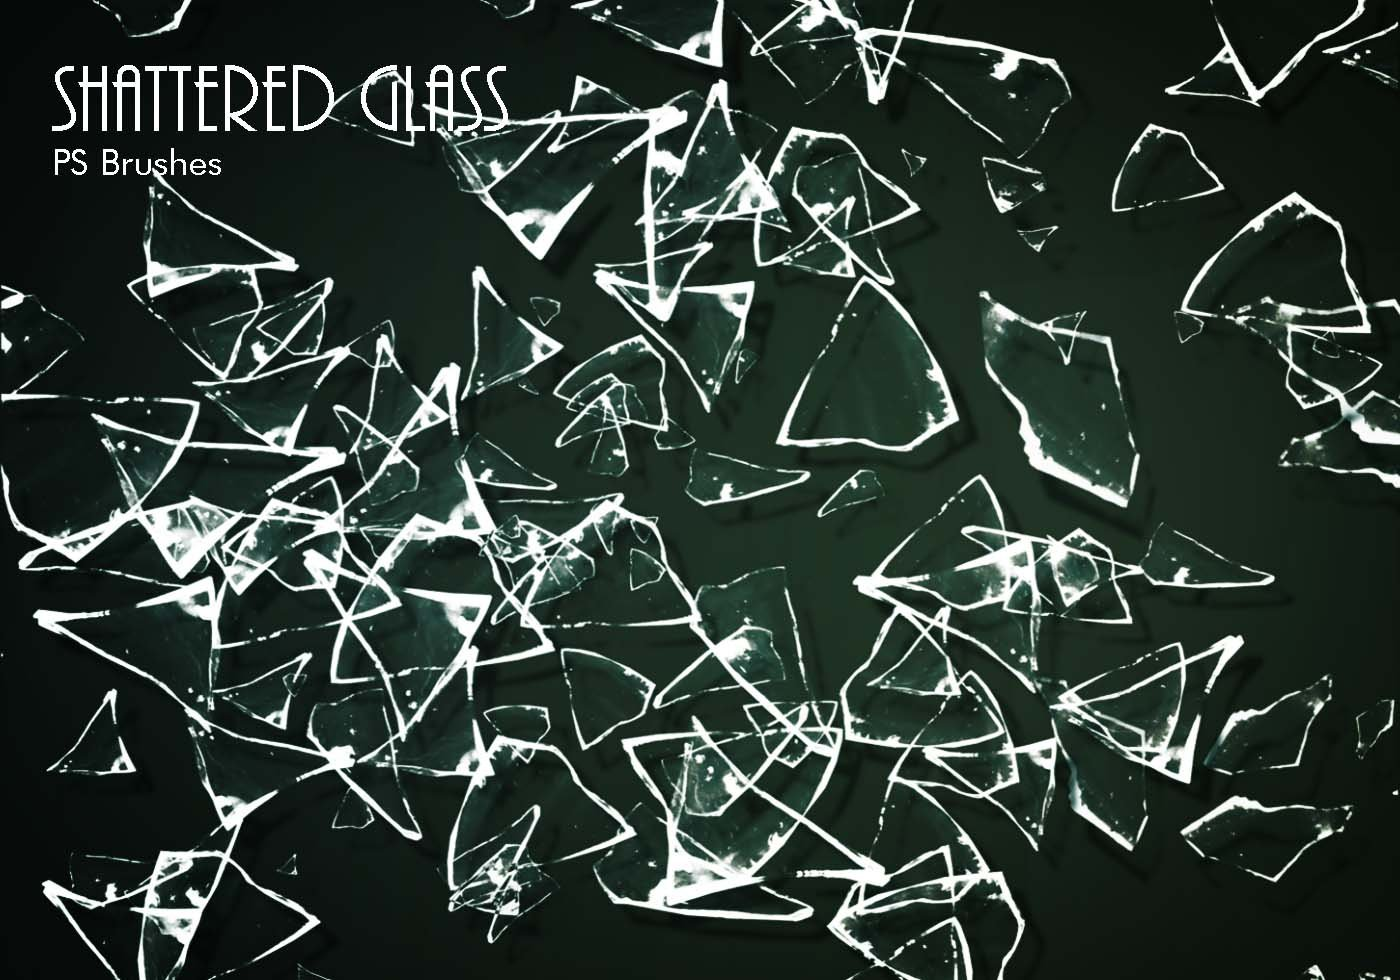 20 Shattered Glass Ps Brushes Abr Vol 6 Free Photoshop